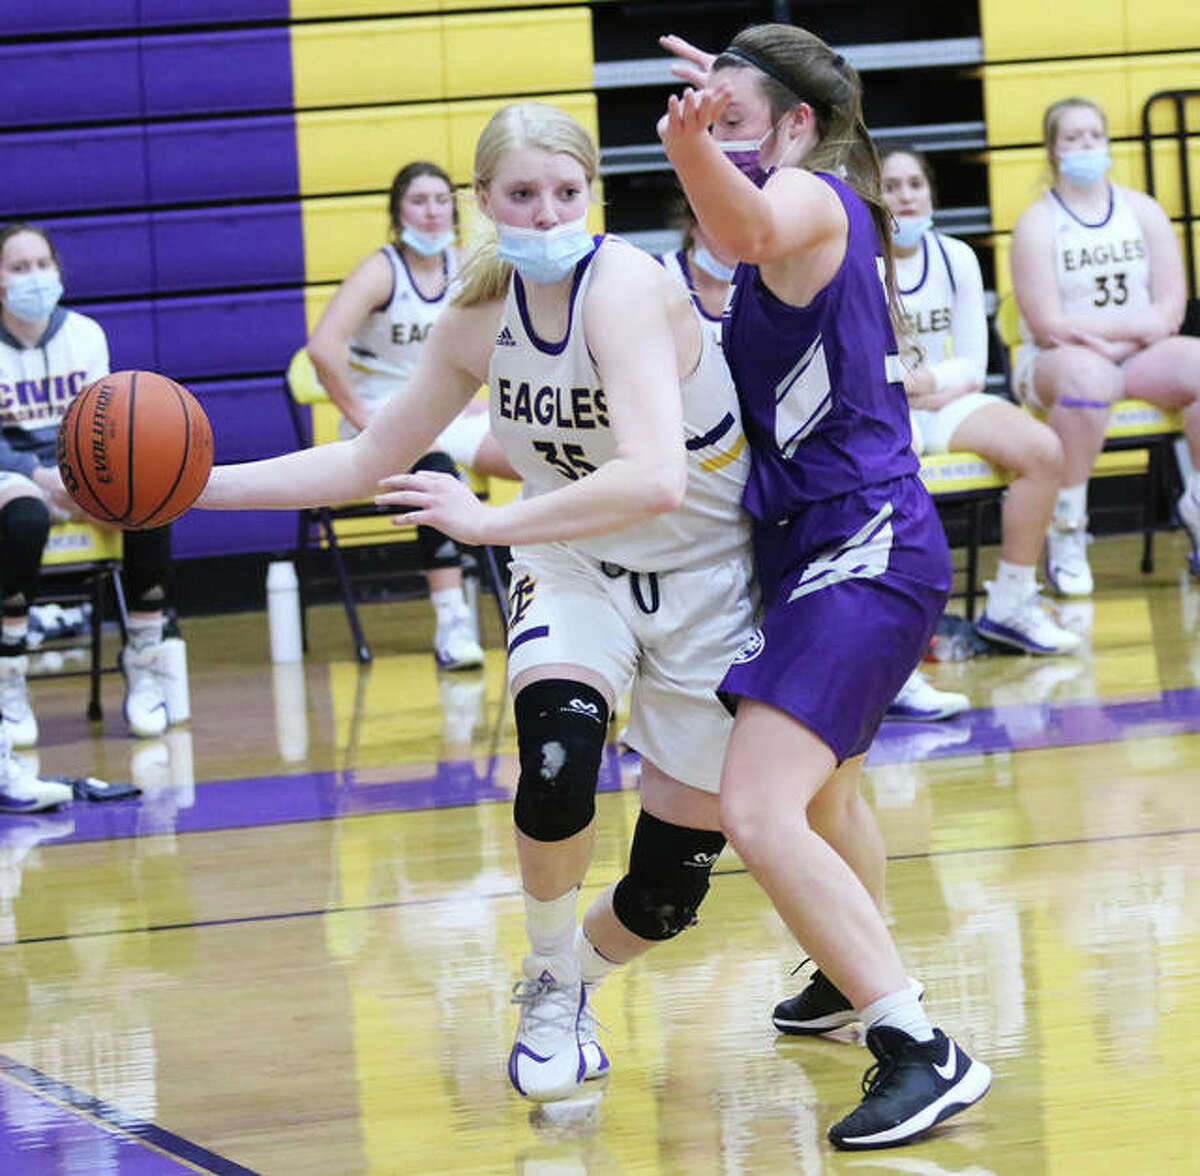 CM's Claire Christeson (left), shown passing off a baseline drive against Breese Central in a Feb. 9 game in Bethalto, scored 15 points Thursday night in the Eagles' MVC victory at Mascoutah.